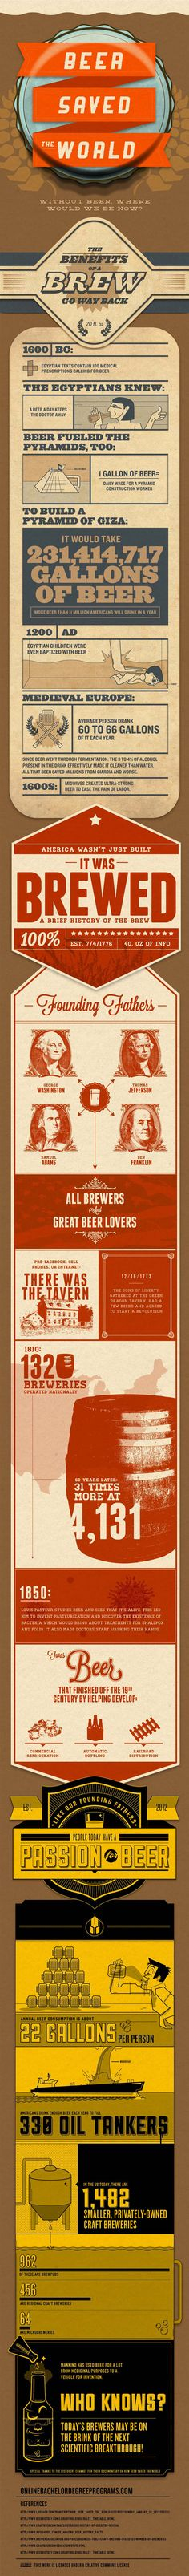 wonderful usage of the information and the media, spilling beer fulls the next graph about the beer consumption. wonderful!